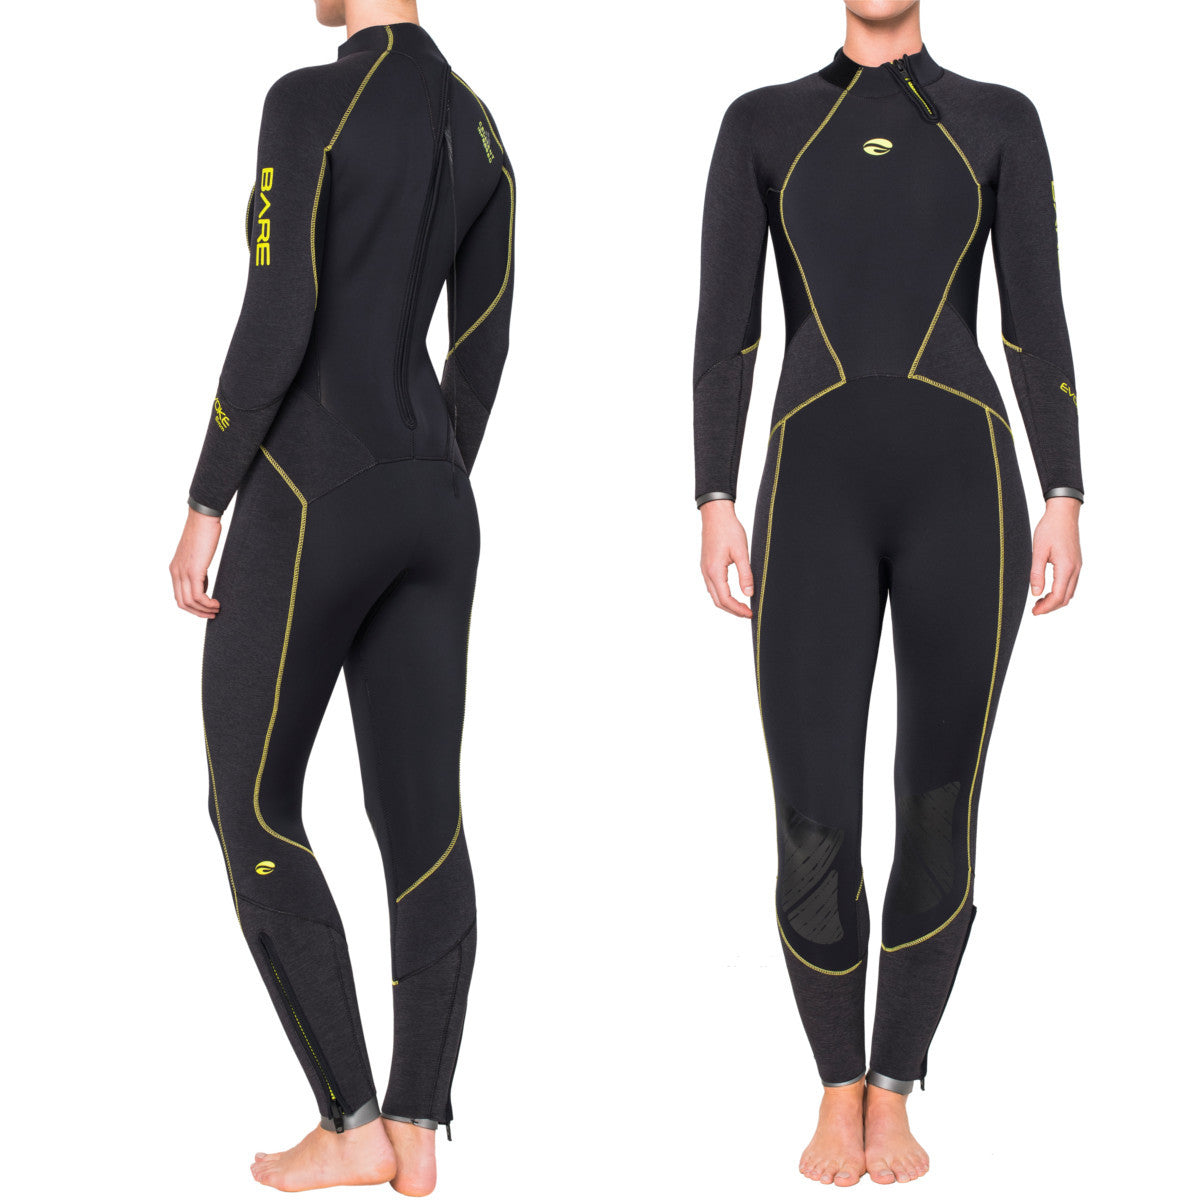 Bare Evoke 5mm Wetsuit: Womens - Oyster Diving Shop - 7